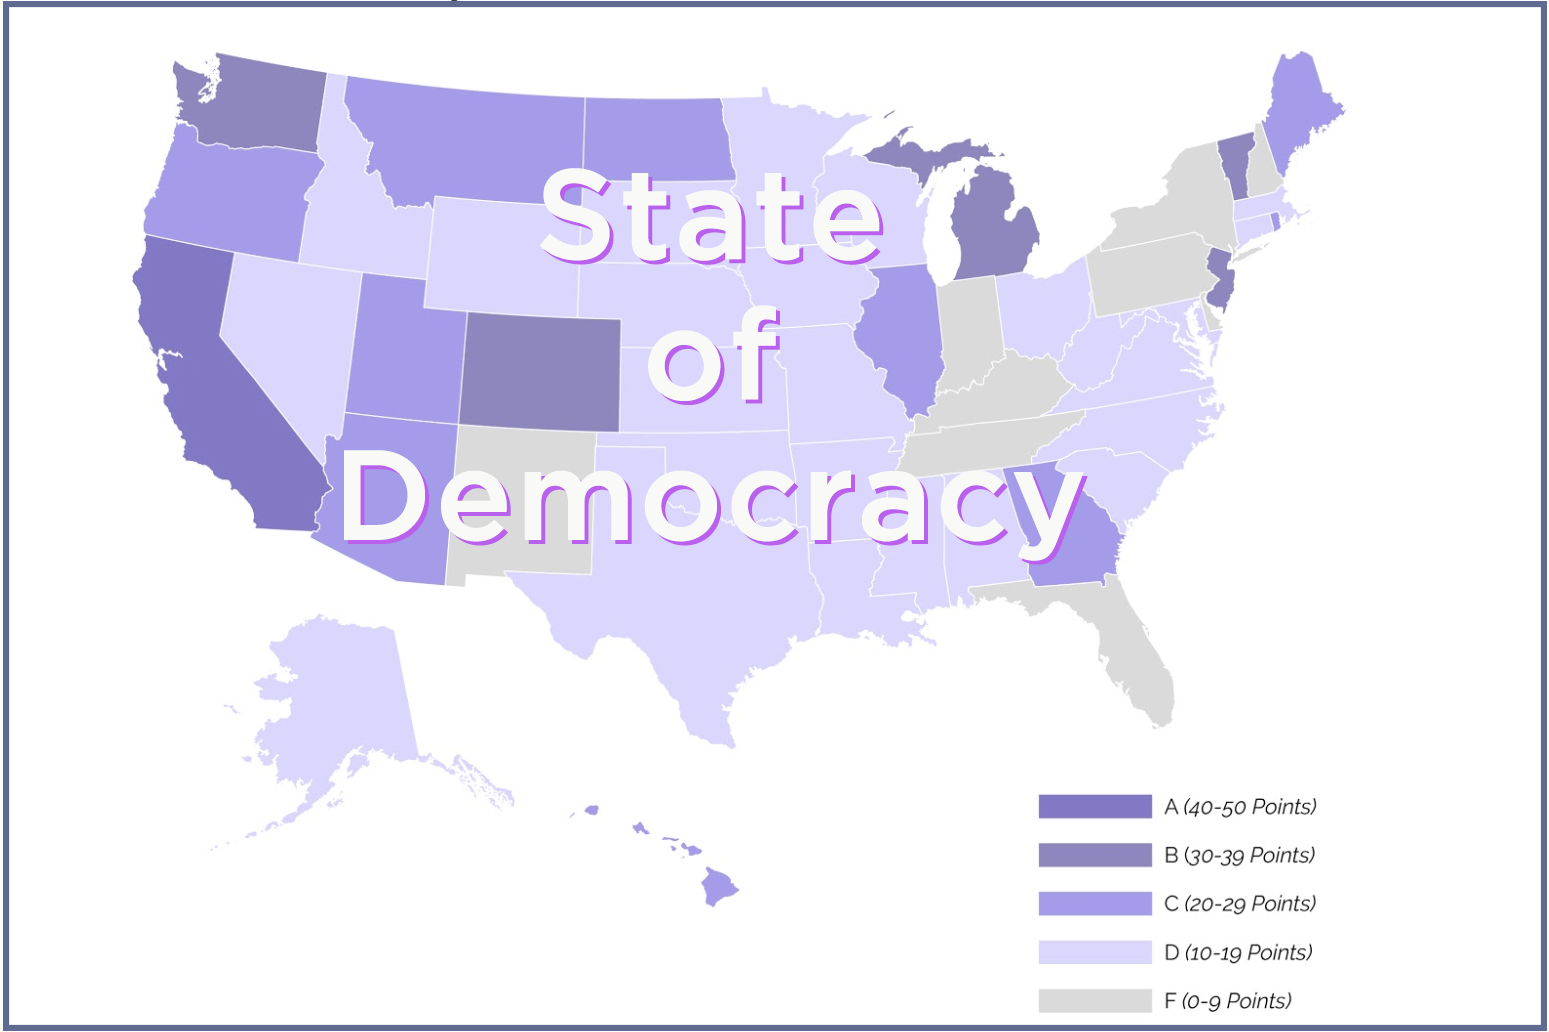 STATE OF DEMOCRACY   Our State of Democracy report looks at the progress of the states in adopting 5 key electoral reforms that make the system more representative, with higher levels of participation, accountability and competition.